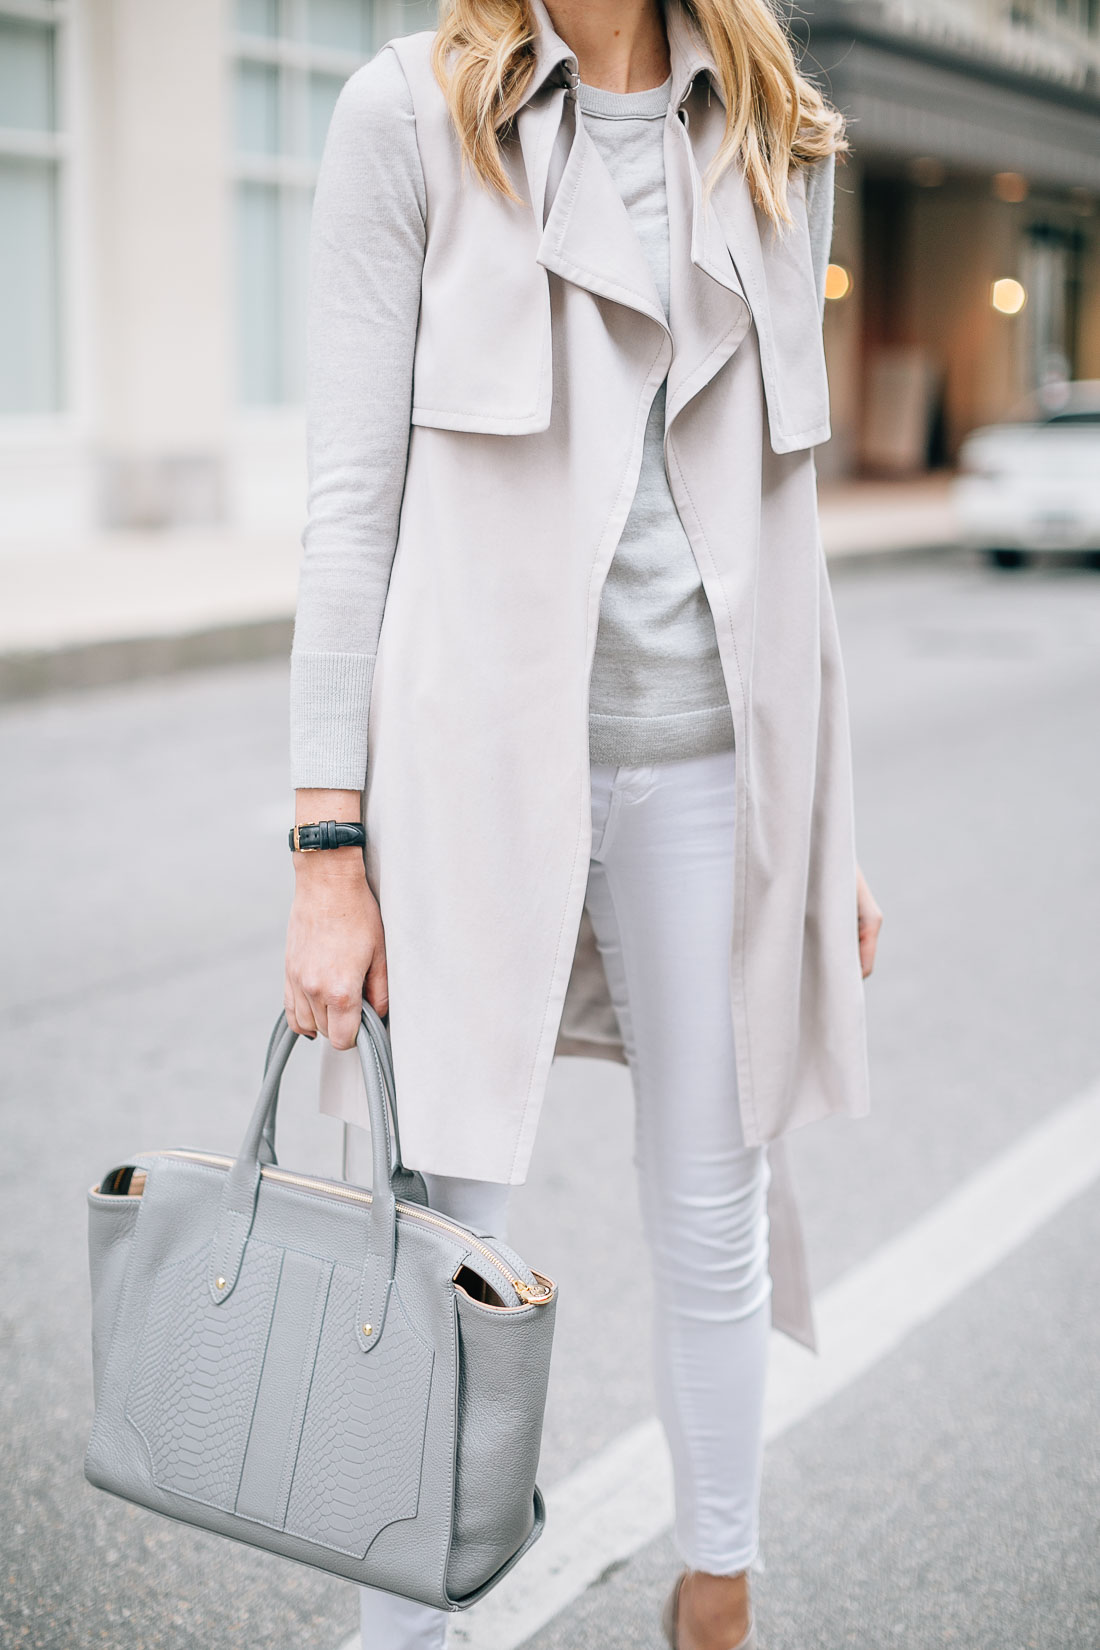 fashion-jackson-club-monaco-trench-vest-grey-sweater-white-skinny-jeans-gigi-new-york-grey-tote